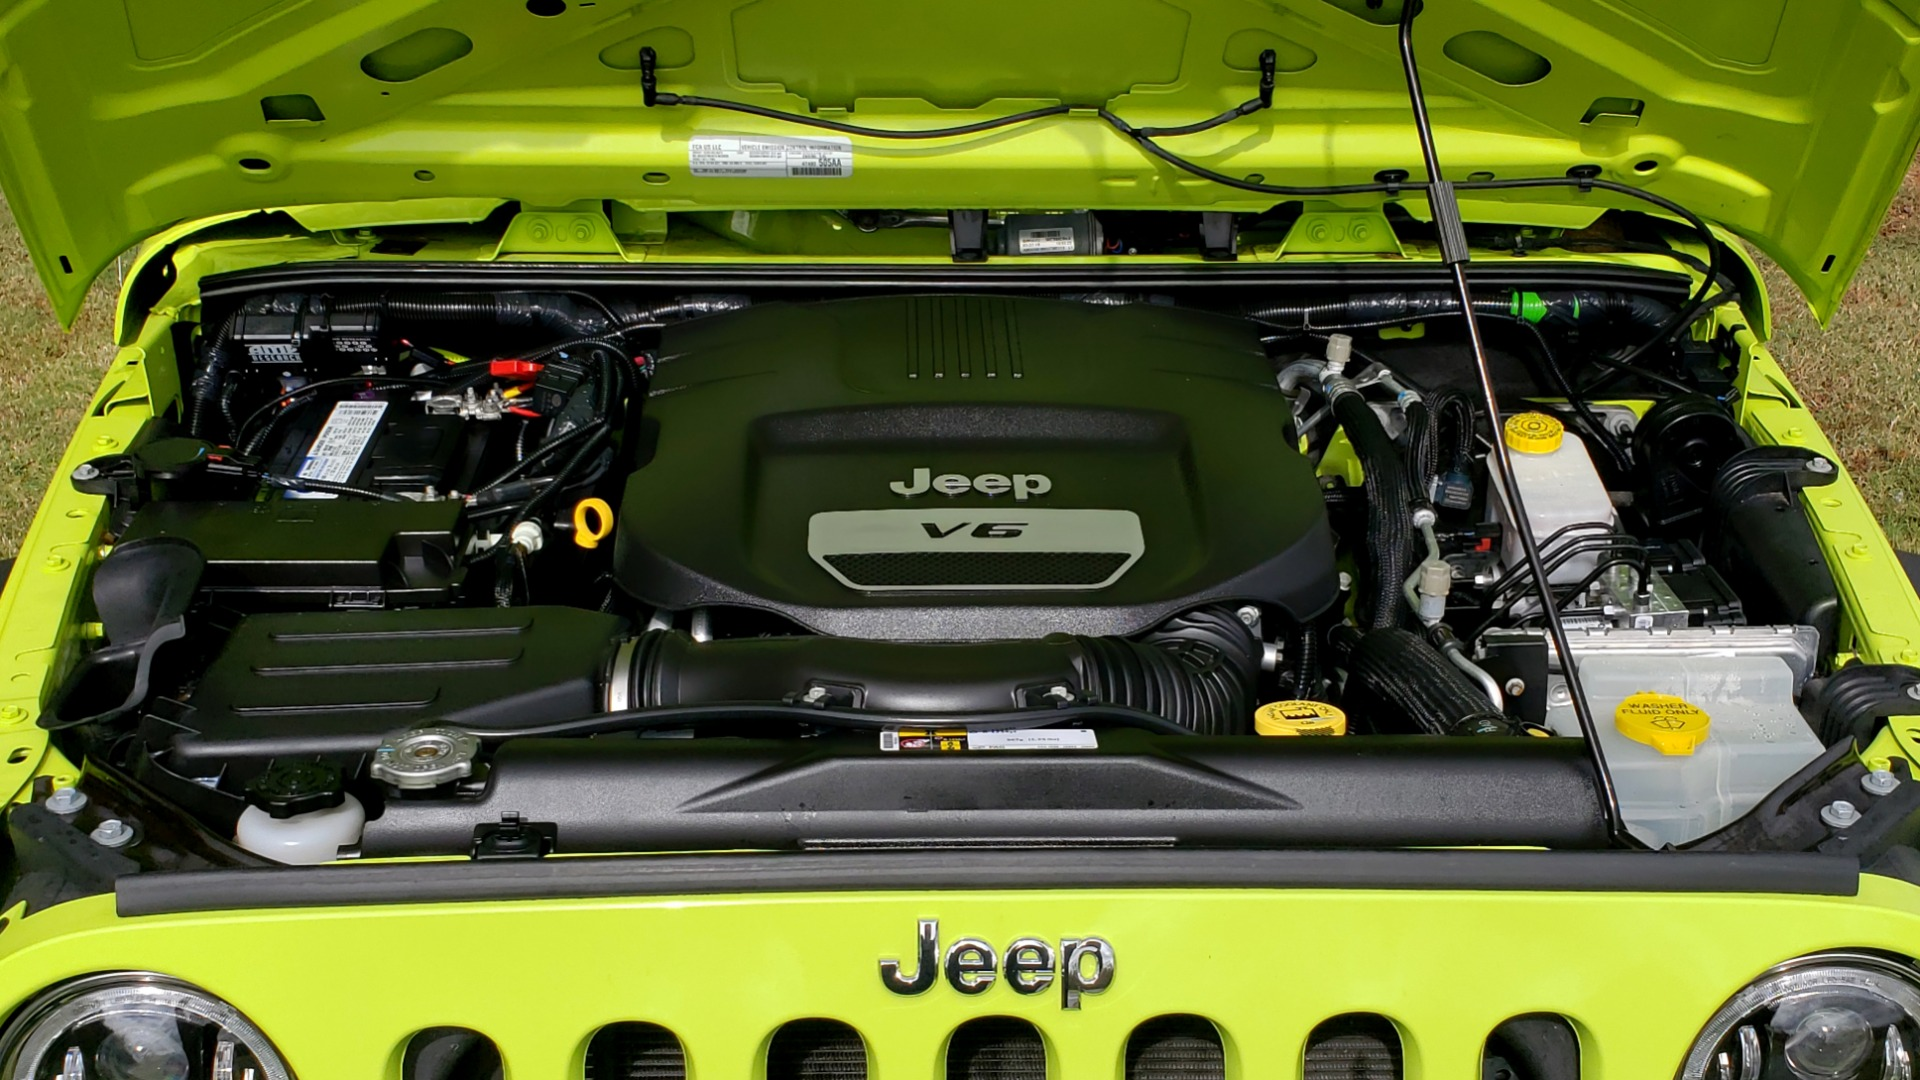 Used 2016 Jeep WRANGLER UNLIMITED SPORT 4X4 / POWER TOP / NAV / HTD STS / REARVIEW for sale $36,999 at Formula Imports in Charlotte NC 28227 23